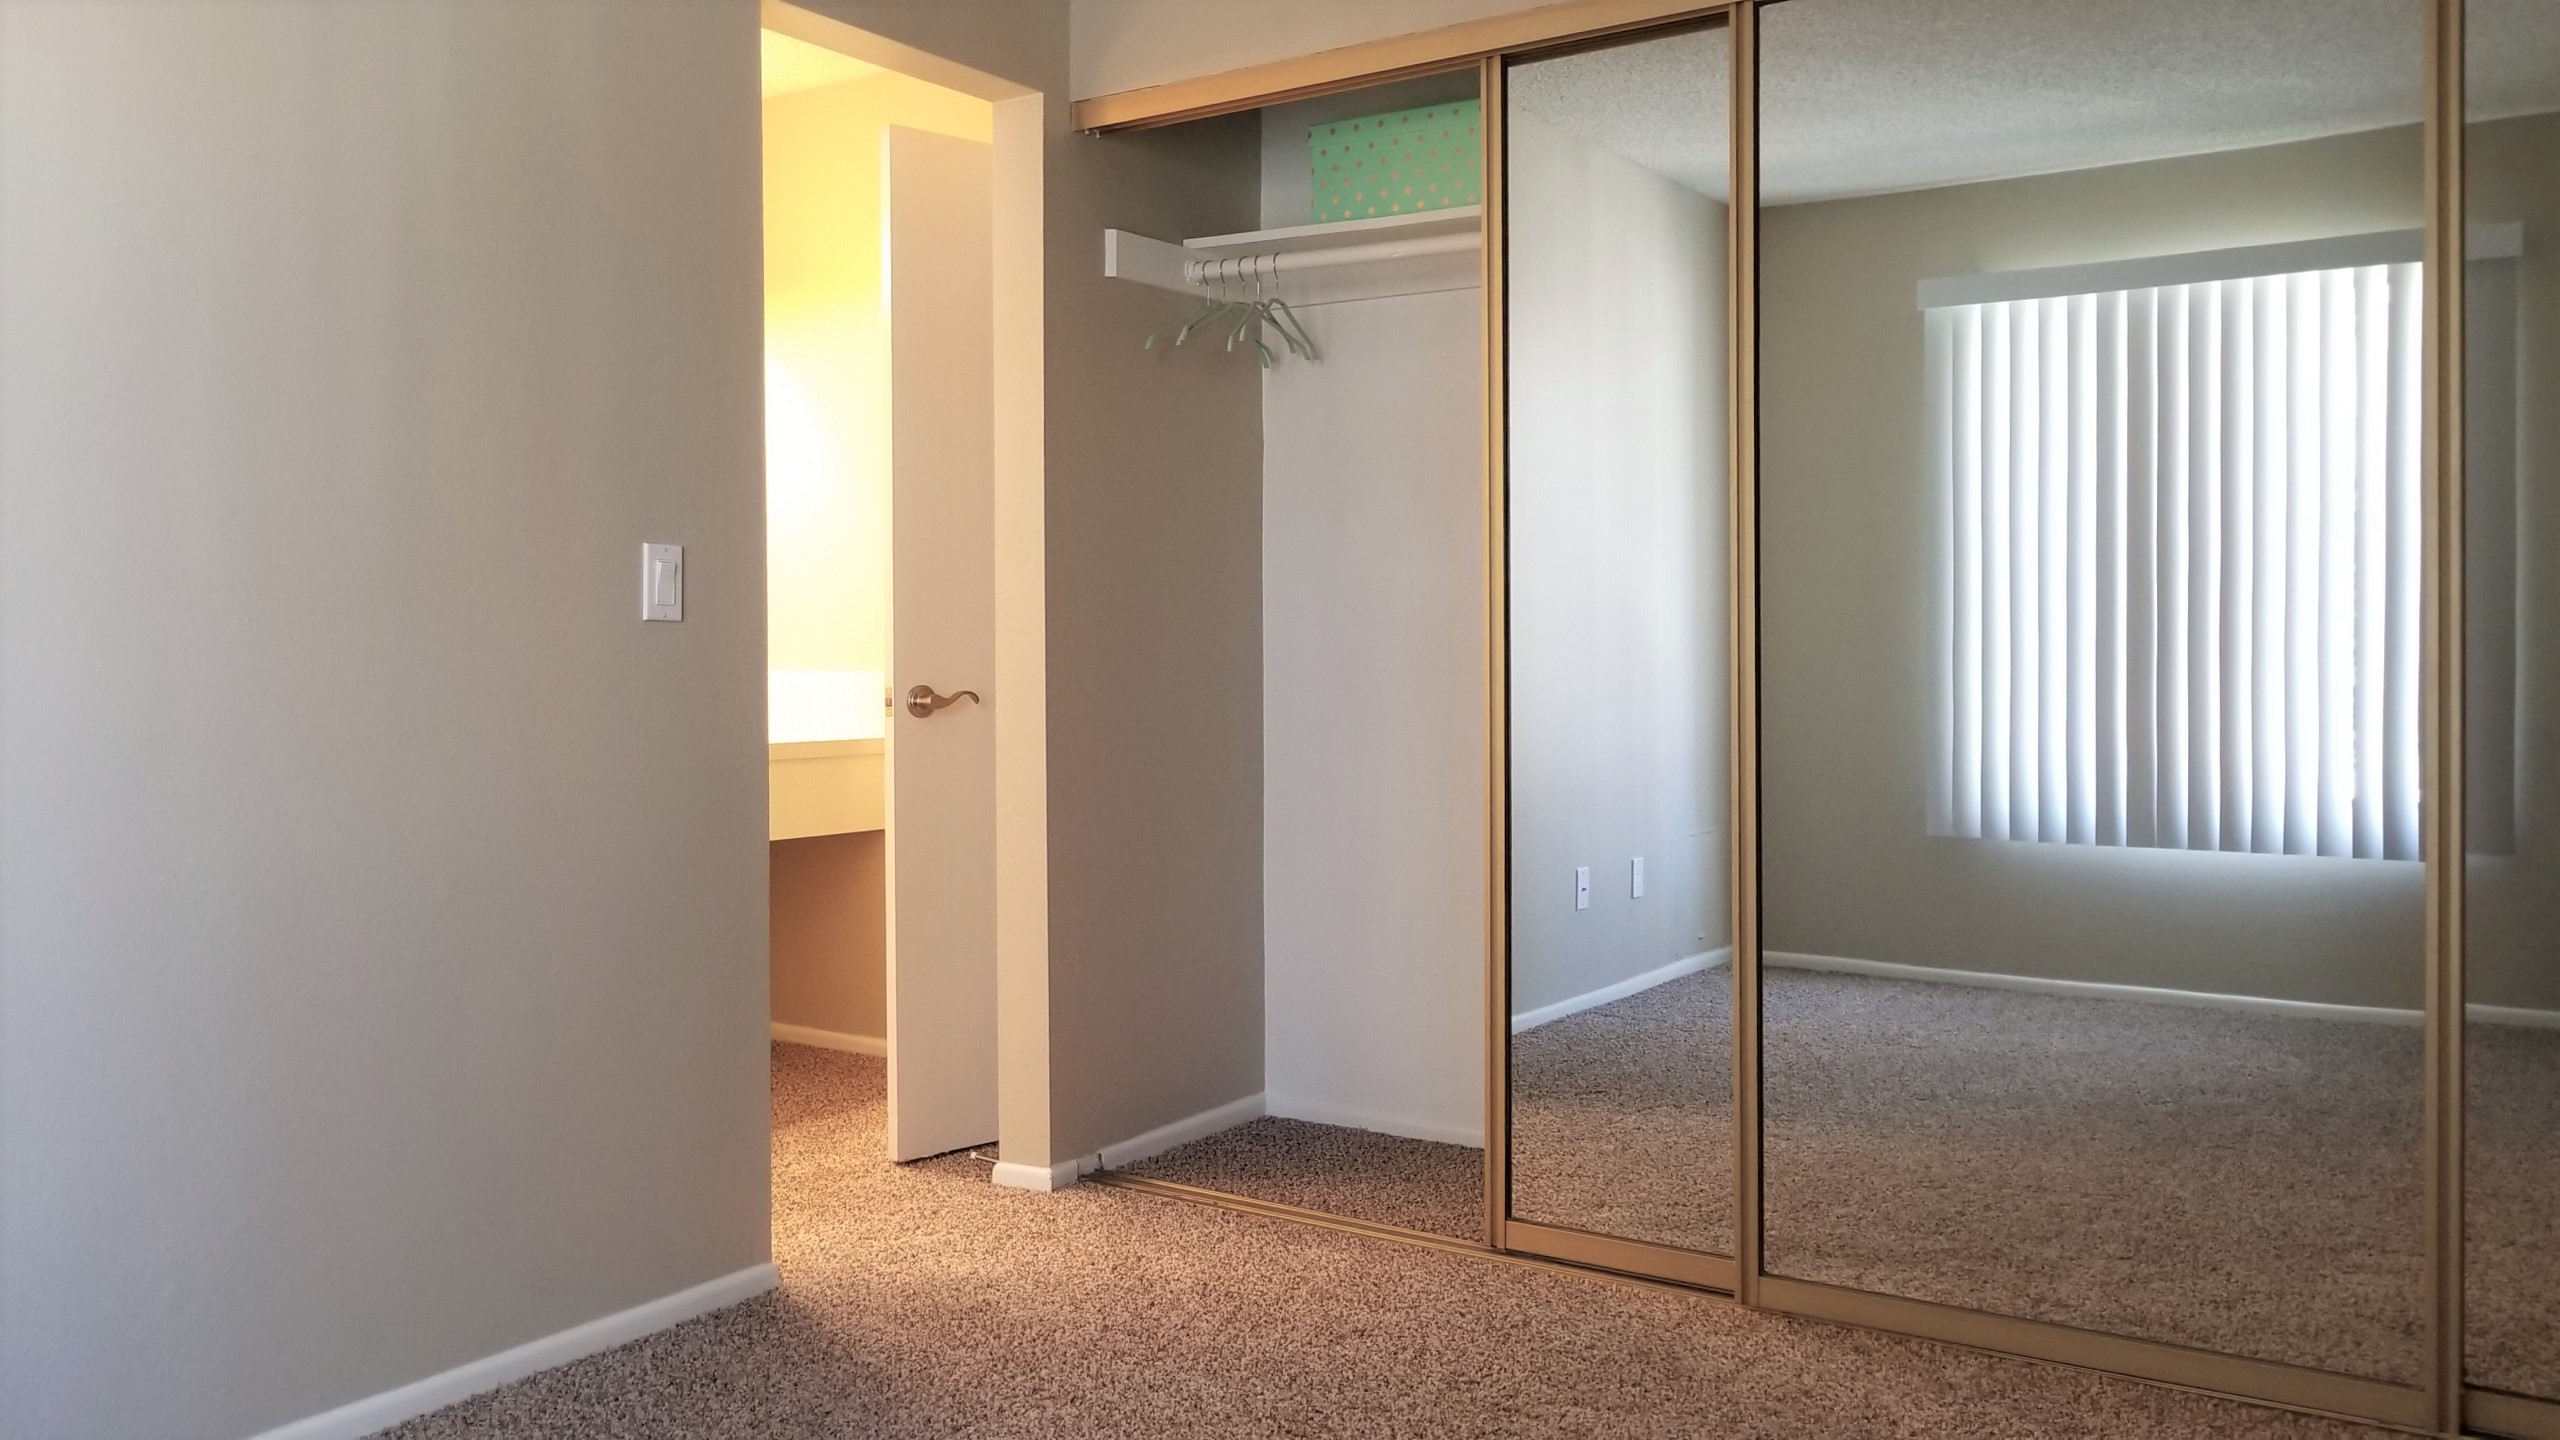 Spacious bedroom with sliding closet doors